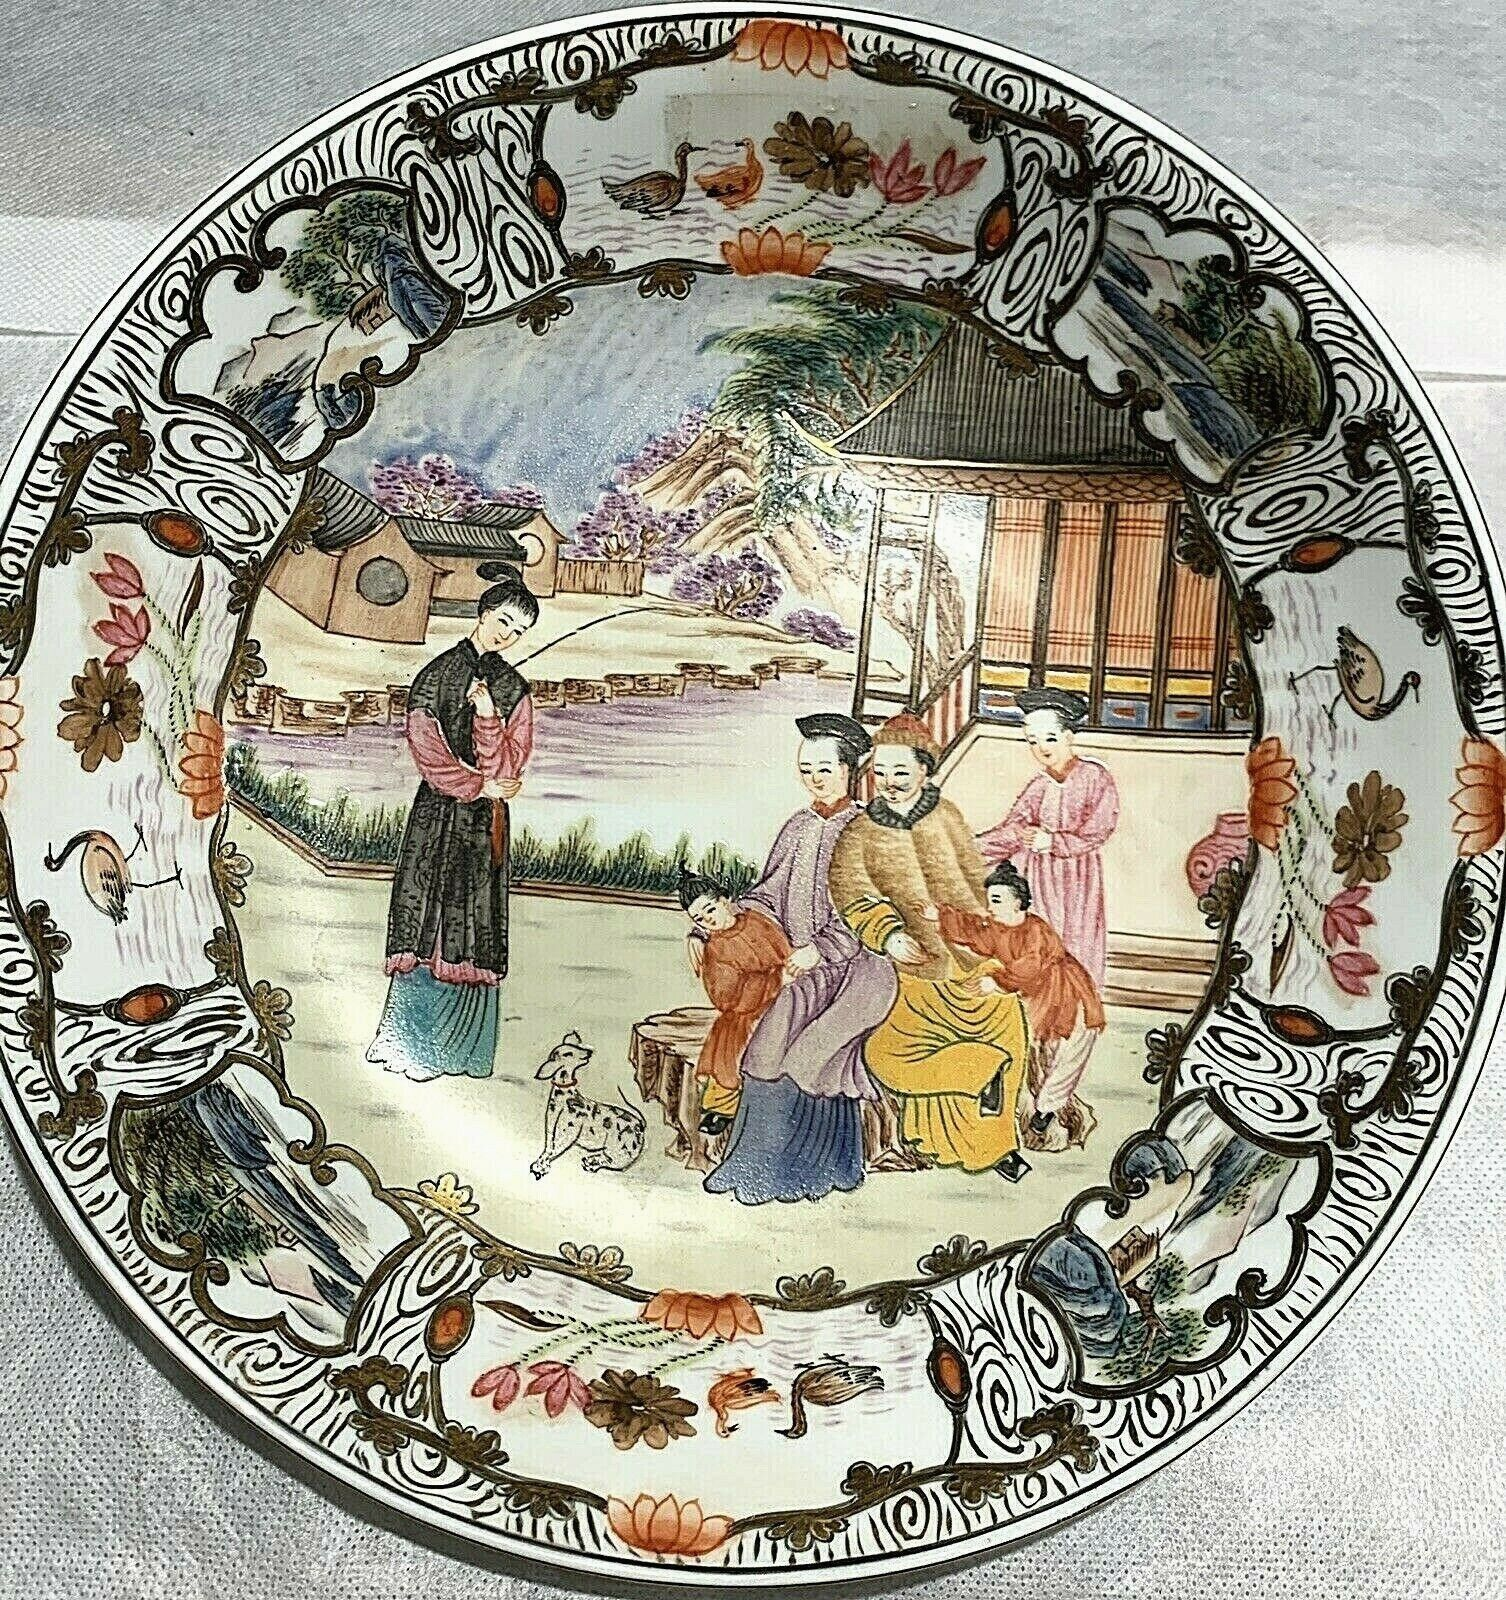 Rare Chinese Export Porcelain Charger - $275.00